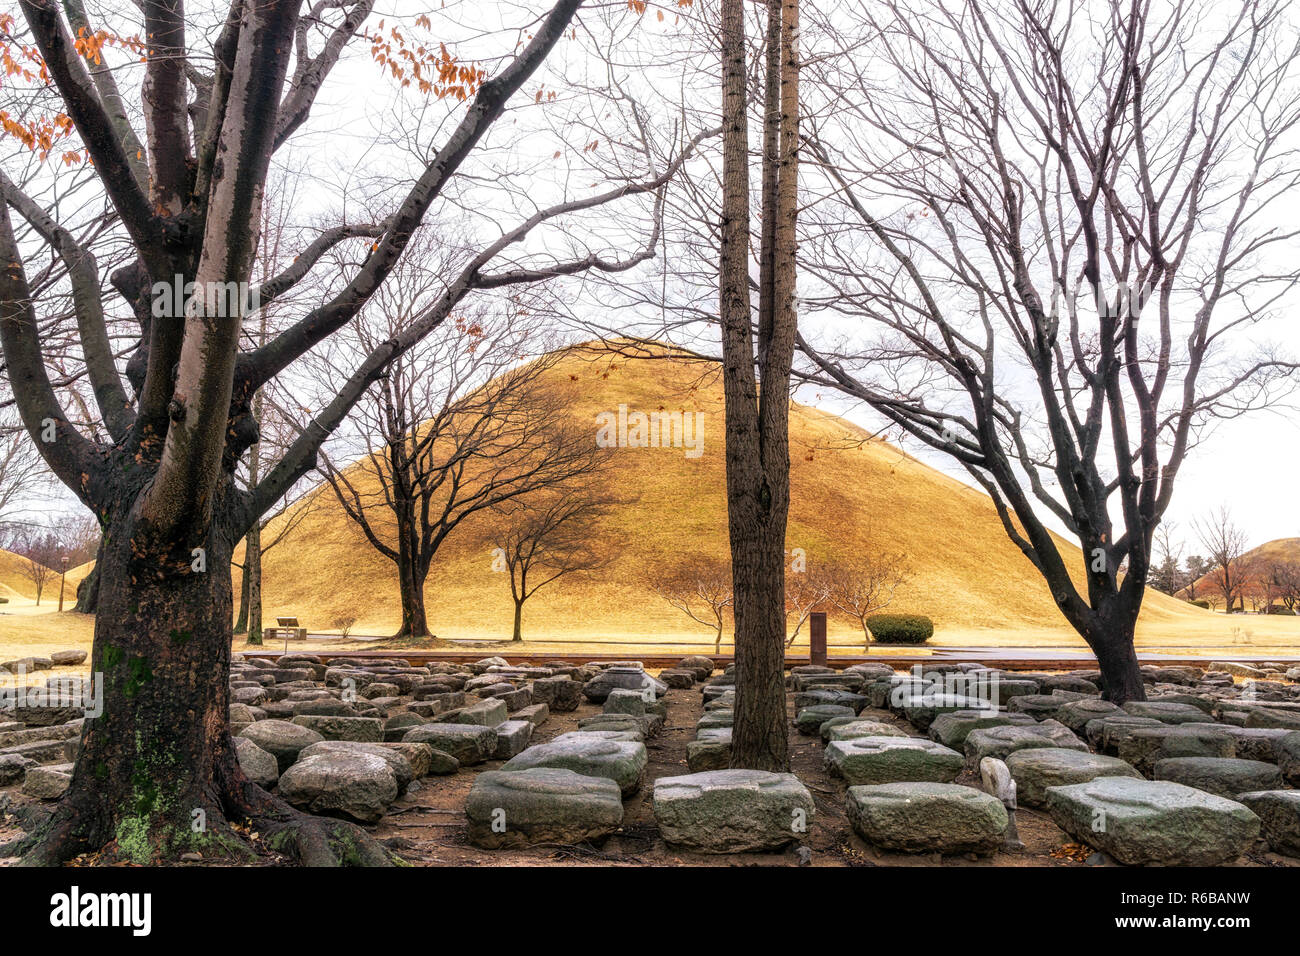 royal mounds excavation site Stock Photo